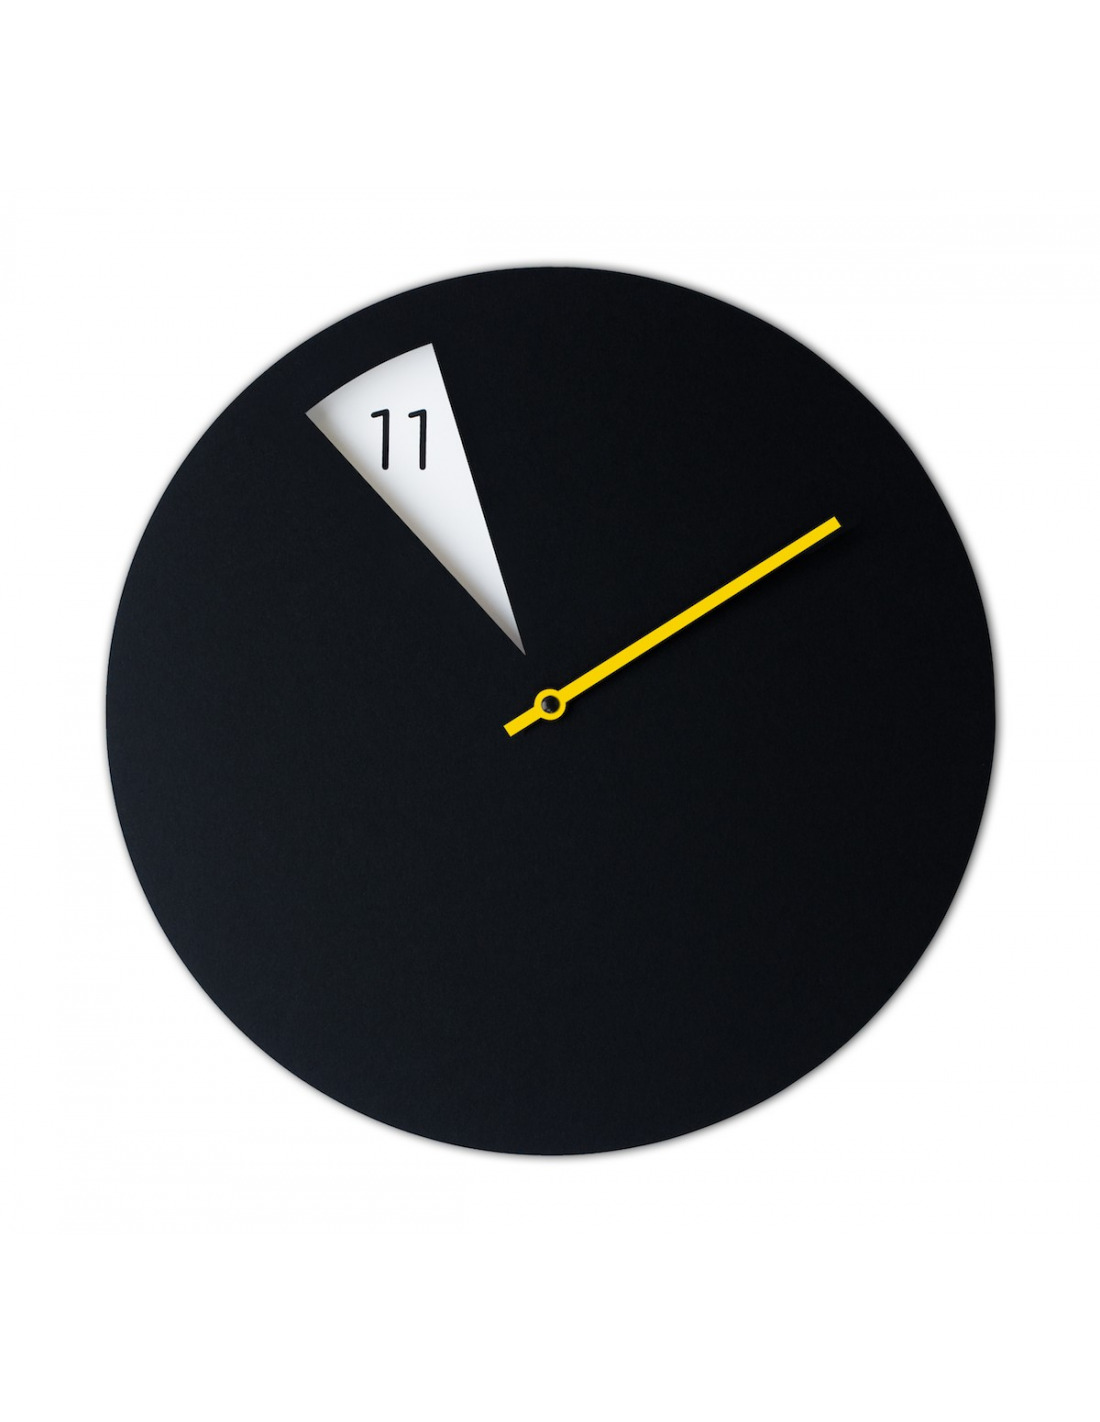 horloge murale design freakishclock noir et jaune en aluminium otoko. Black Bedroom Furniture Sets. Home Design Ideas